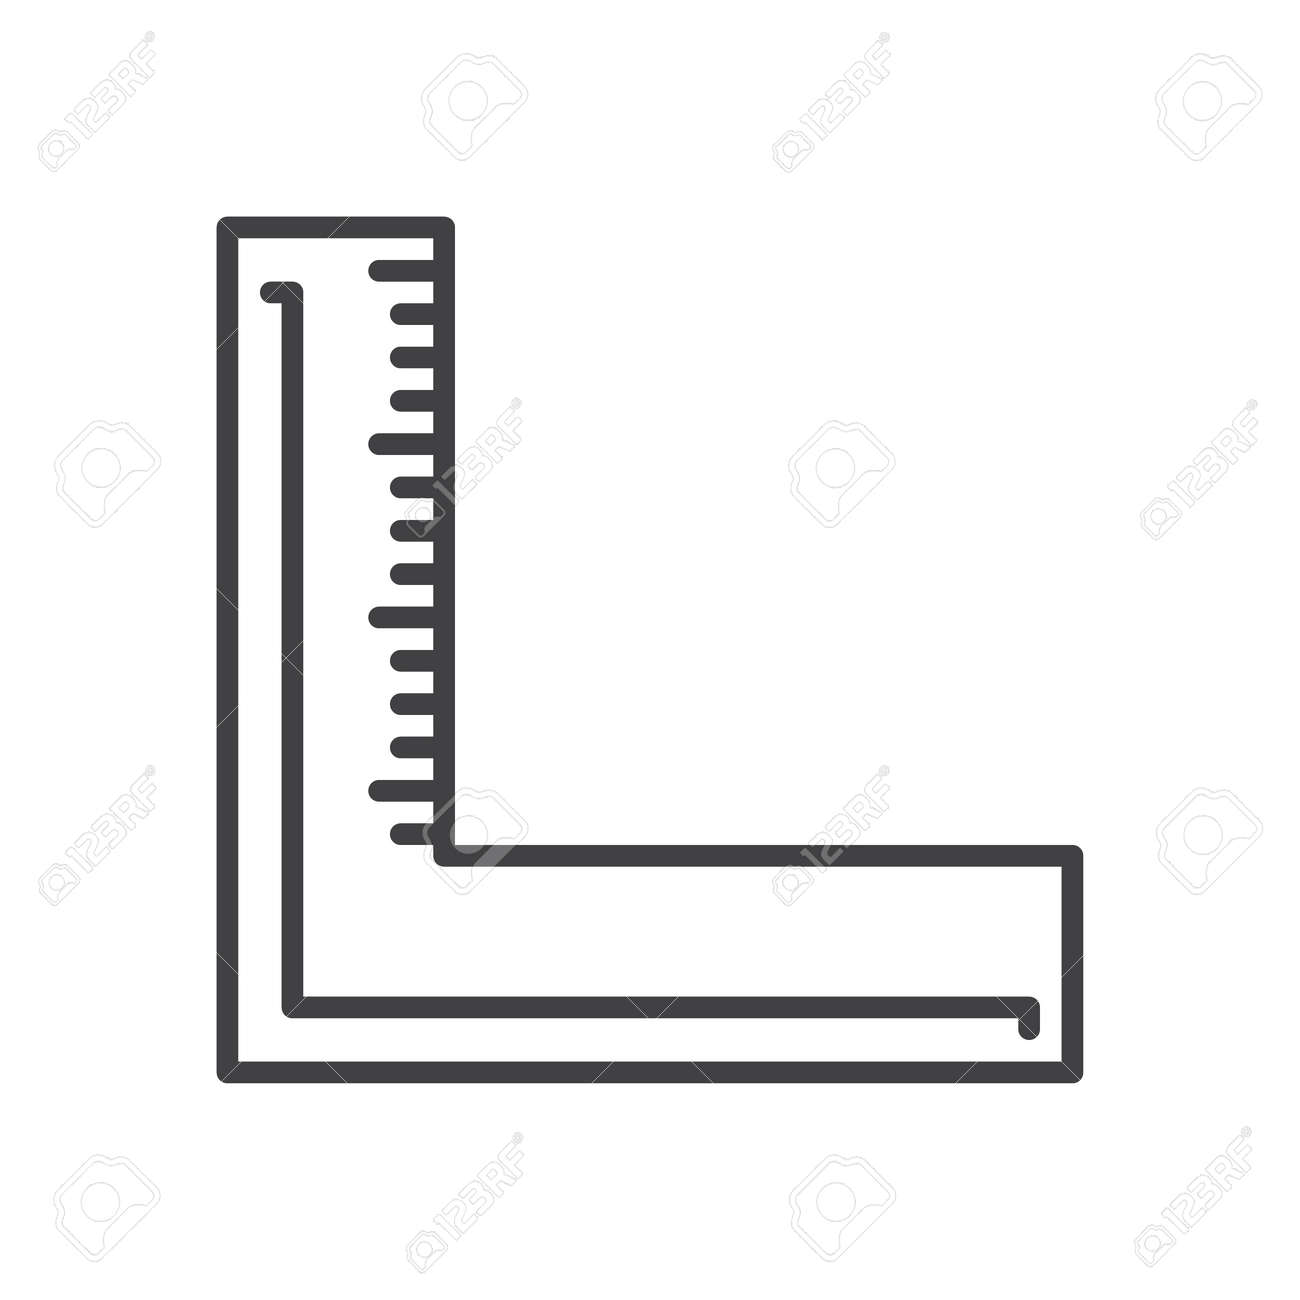 Precision Square Line Icon Outline Vector Sign Linear Style Squarer Pictogram Isolated On White